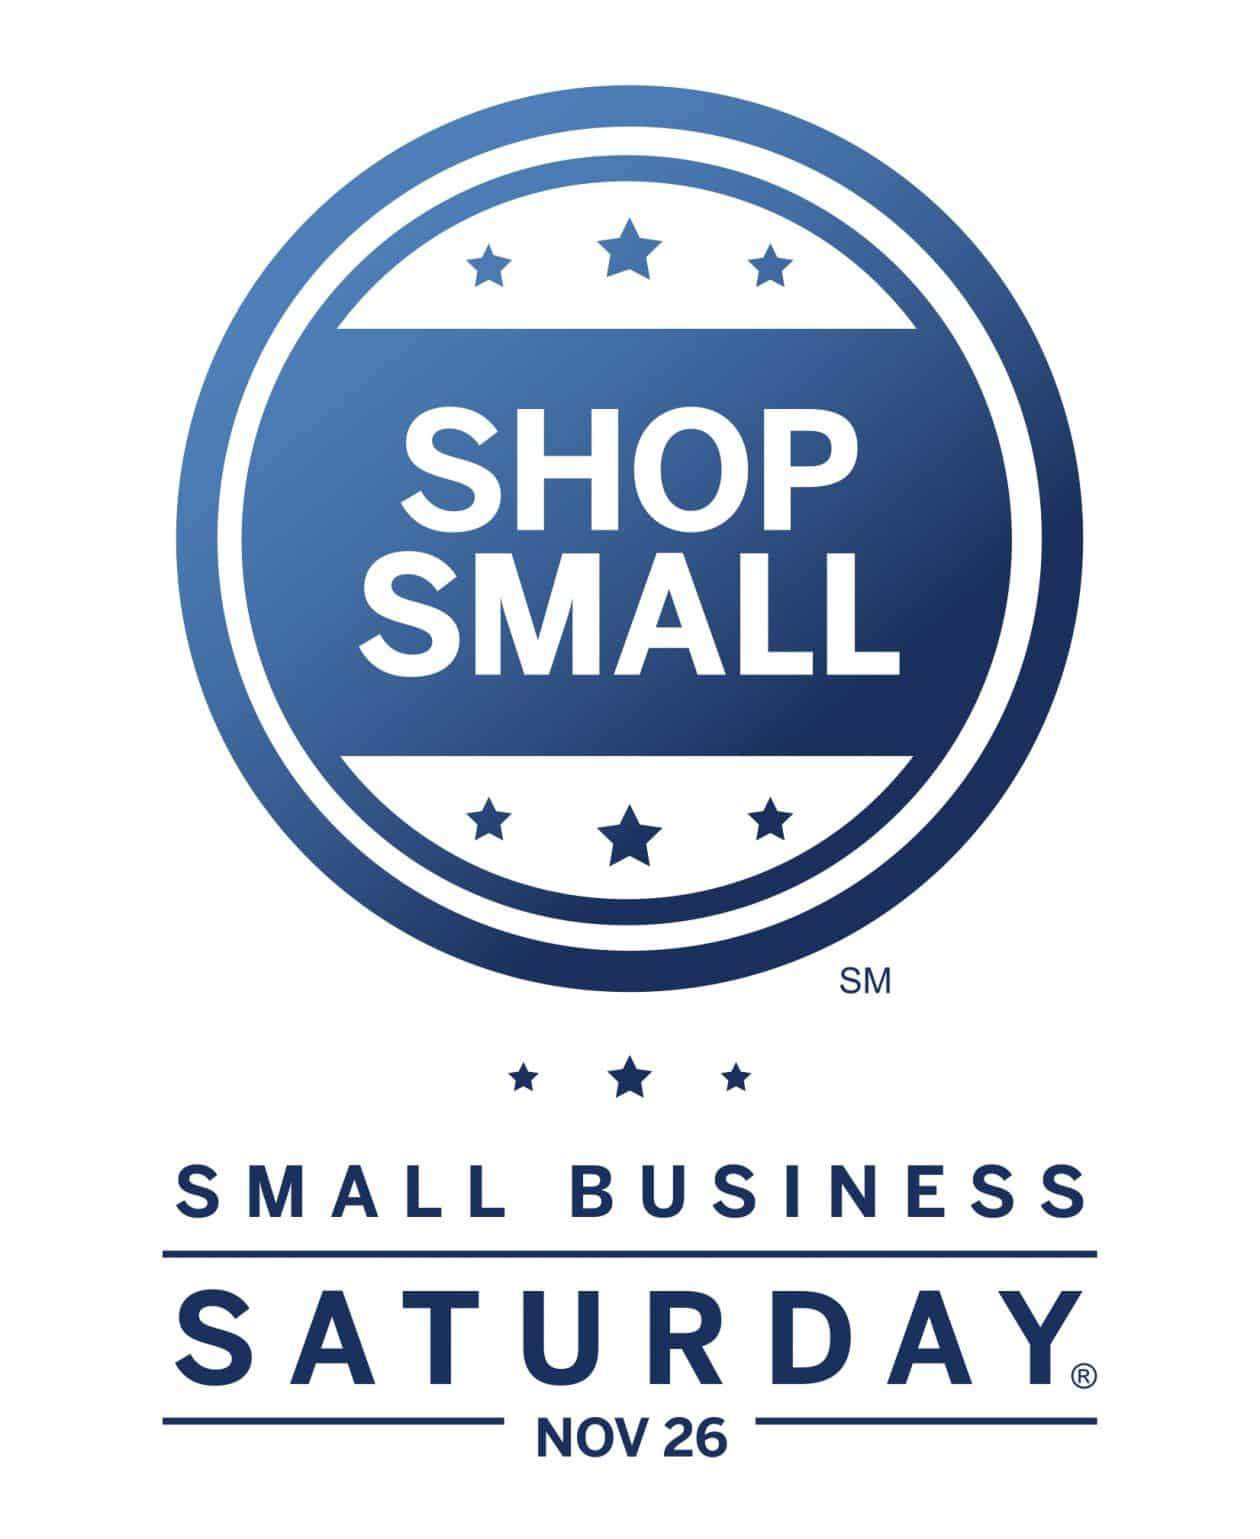 After Black Friday comes Small Business Saturday!